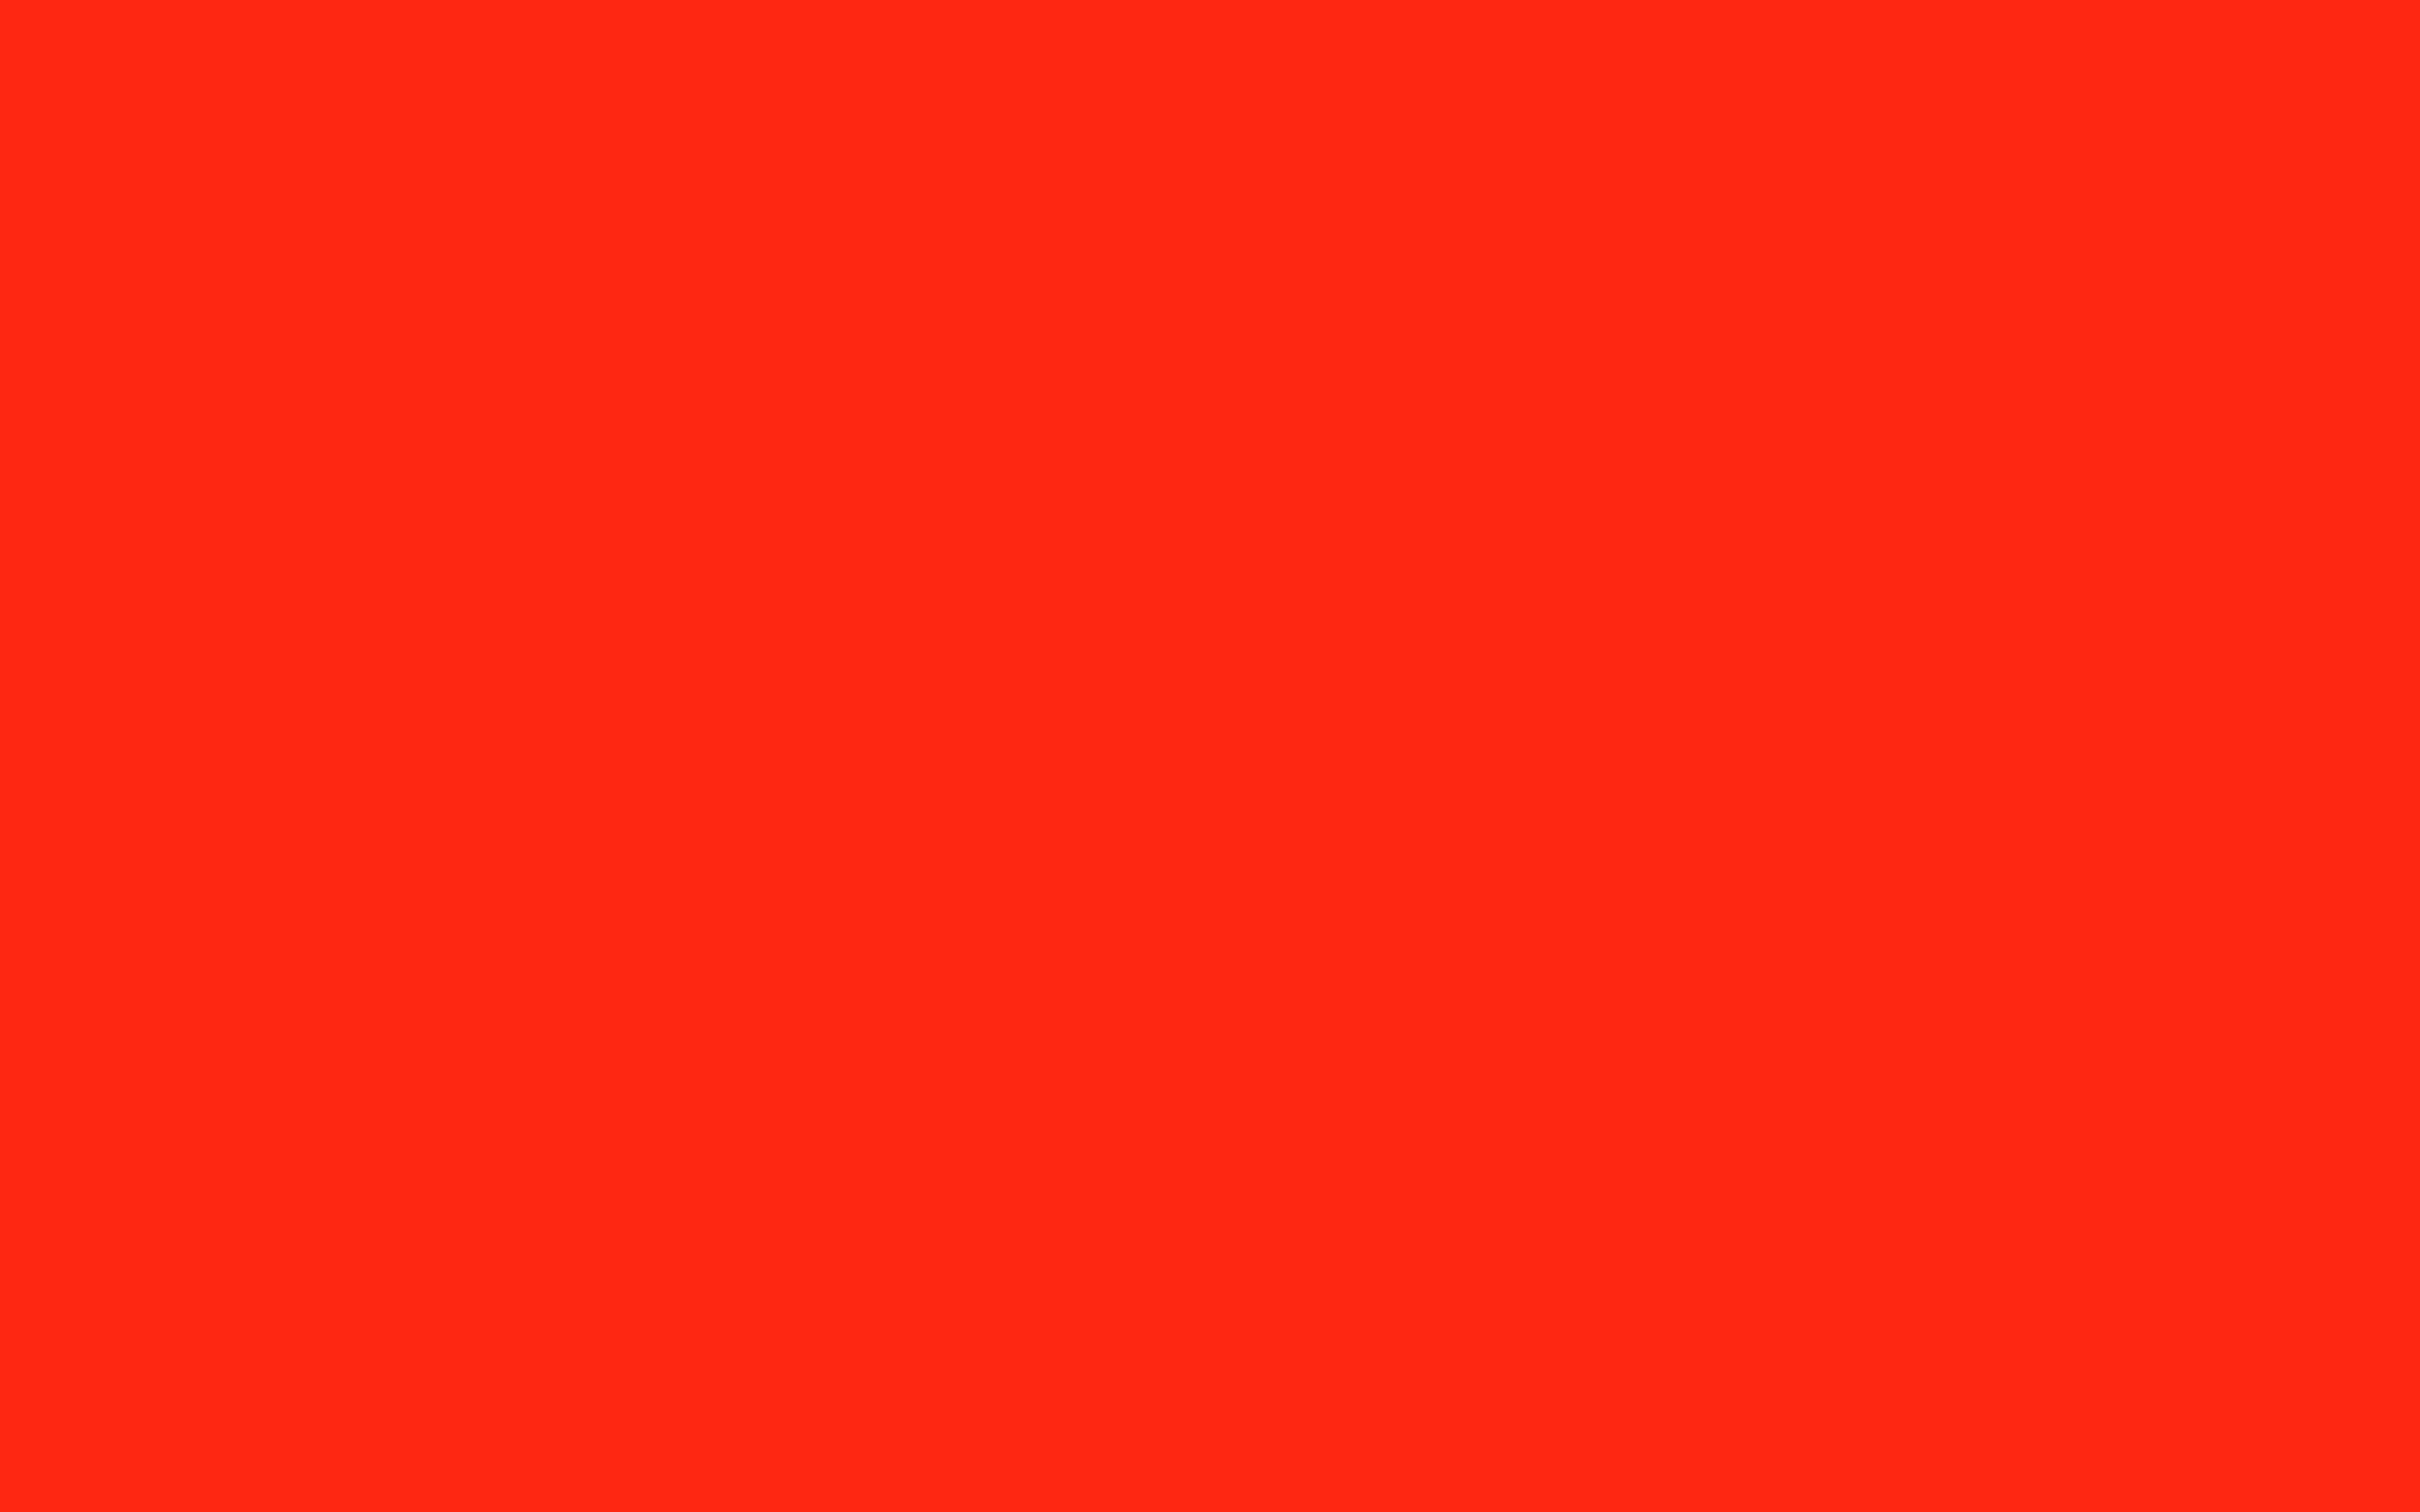 2880x1800 Red RYB Solid Color Background